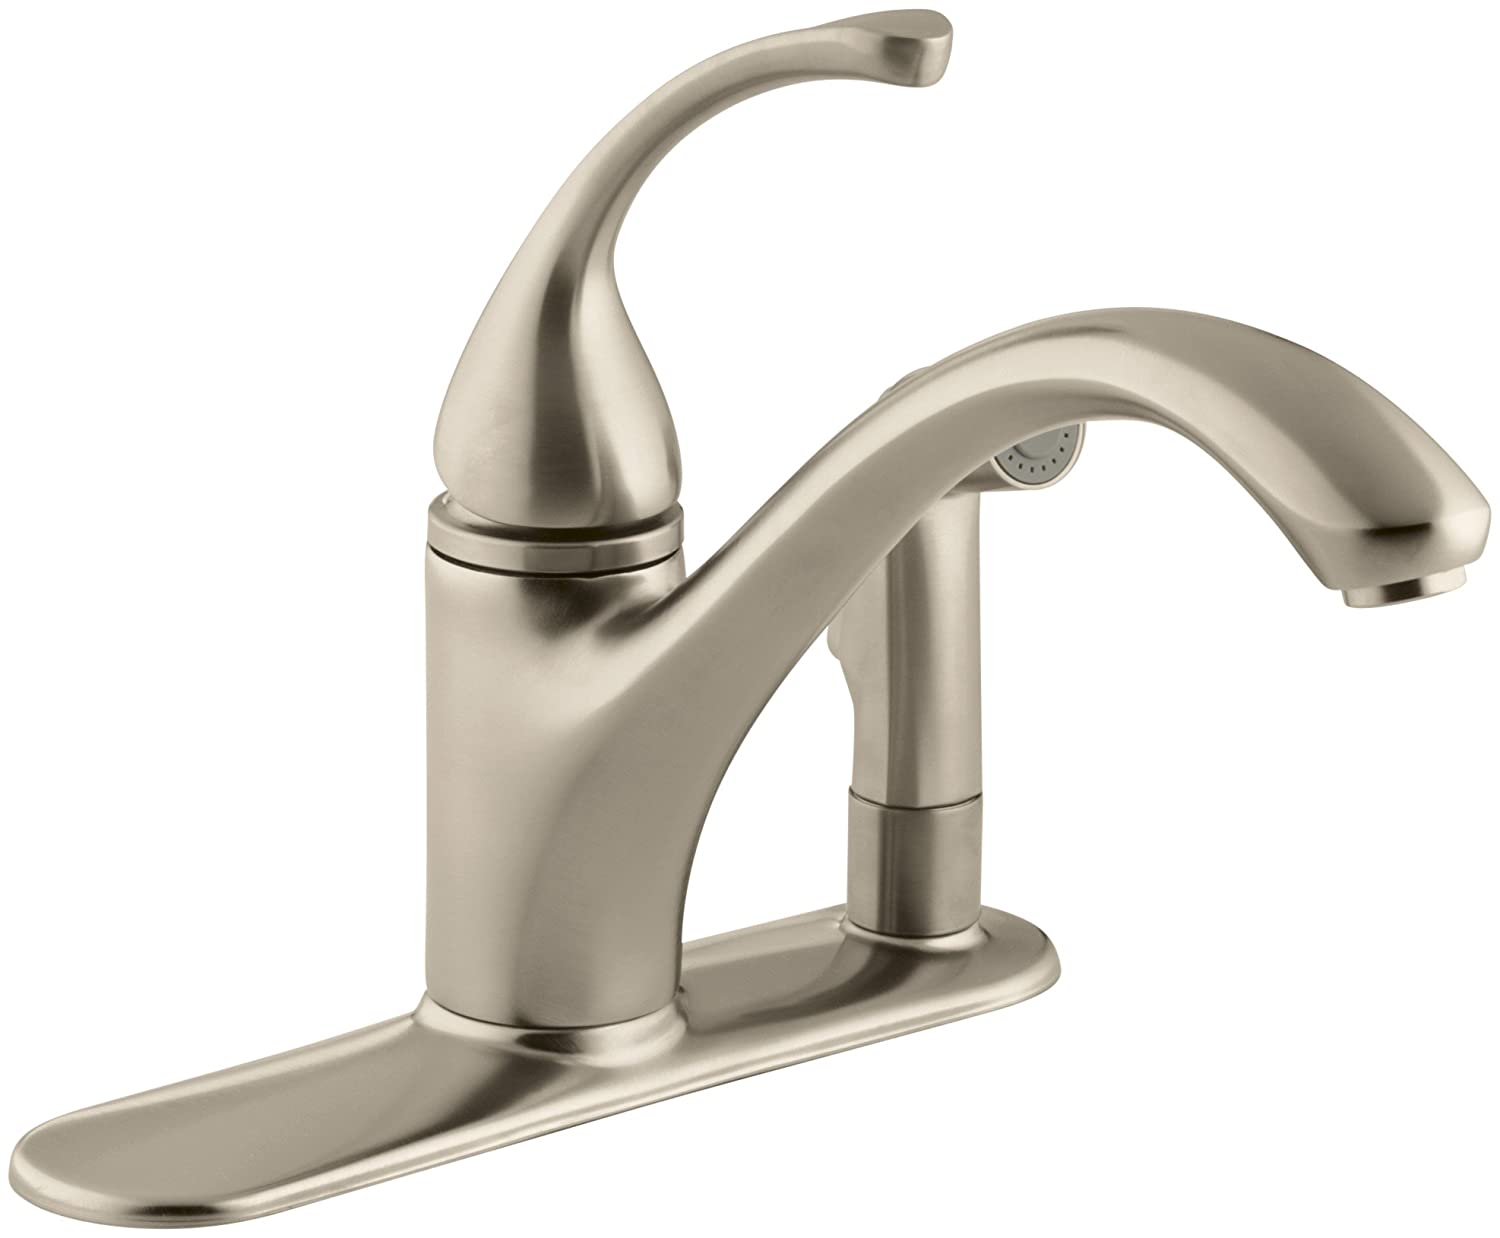 KOHLER K-10413-CP Forte Single Control Kitchen Sink Faucet, Polished ...